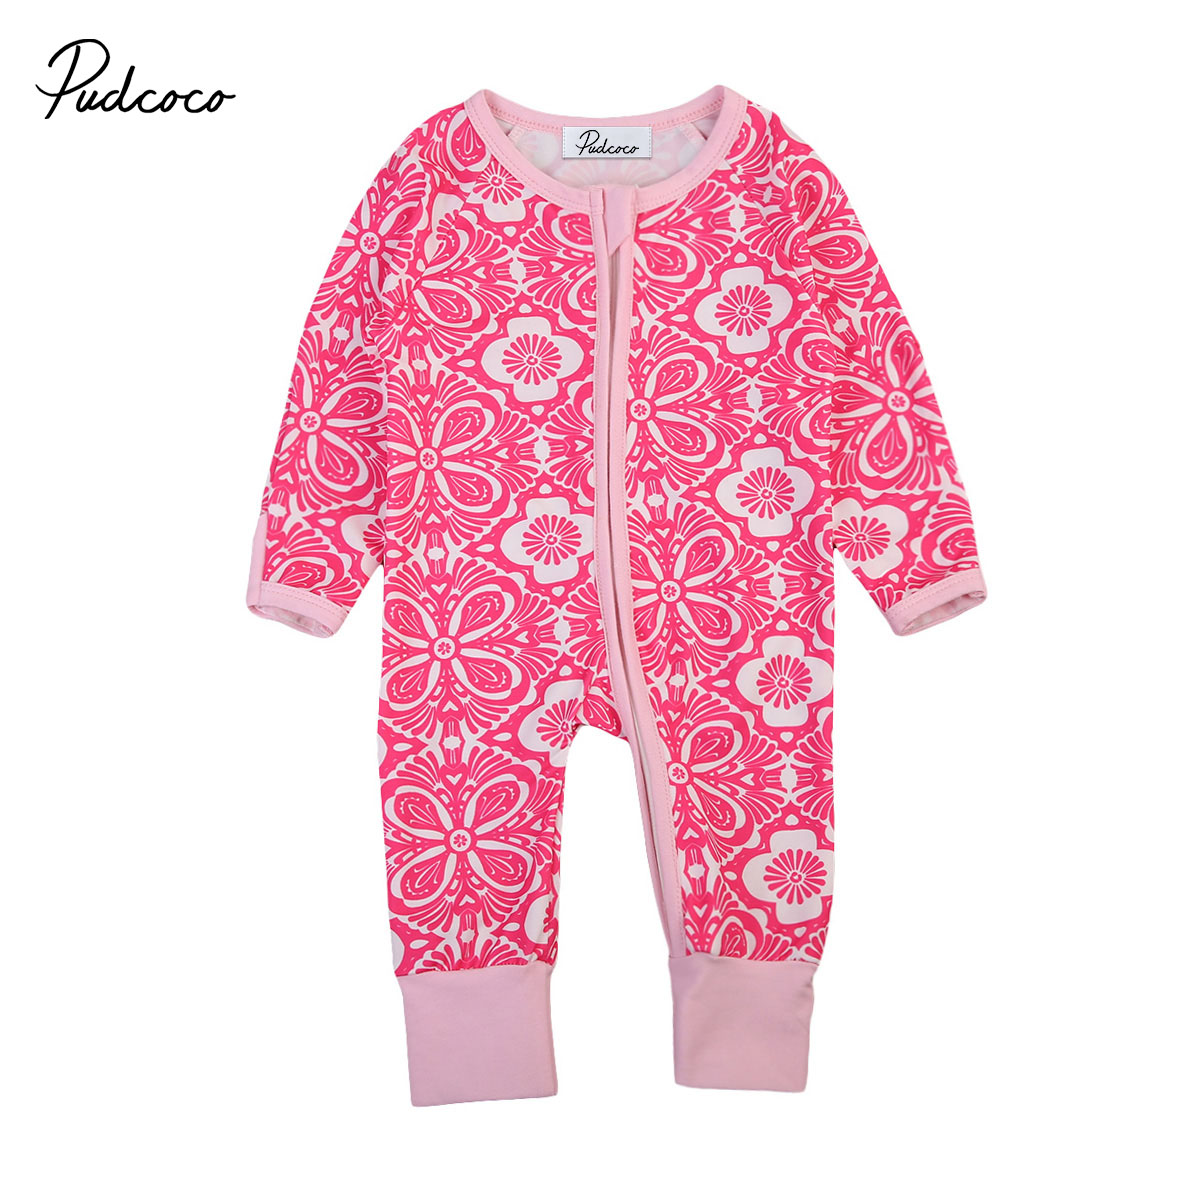 Cute Newborn Baby Boy Girl Long Sleeve Romper Jumpsuit Clothes Outfit Toddler Infant Boys Girls Warm Soft Brief Casual Rompers autumn winter baby girl rompers striped cute infant jumpsuit ropa long sleeve thicken cotton girl romper hat toddler clothes